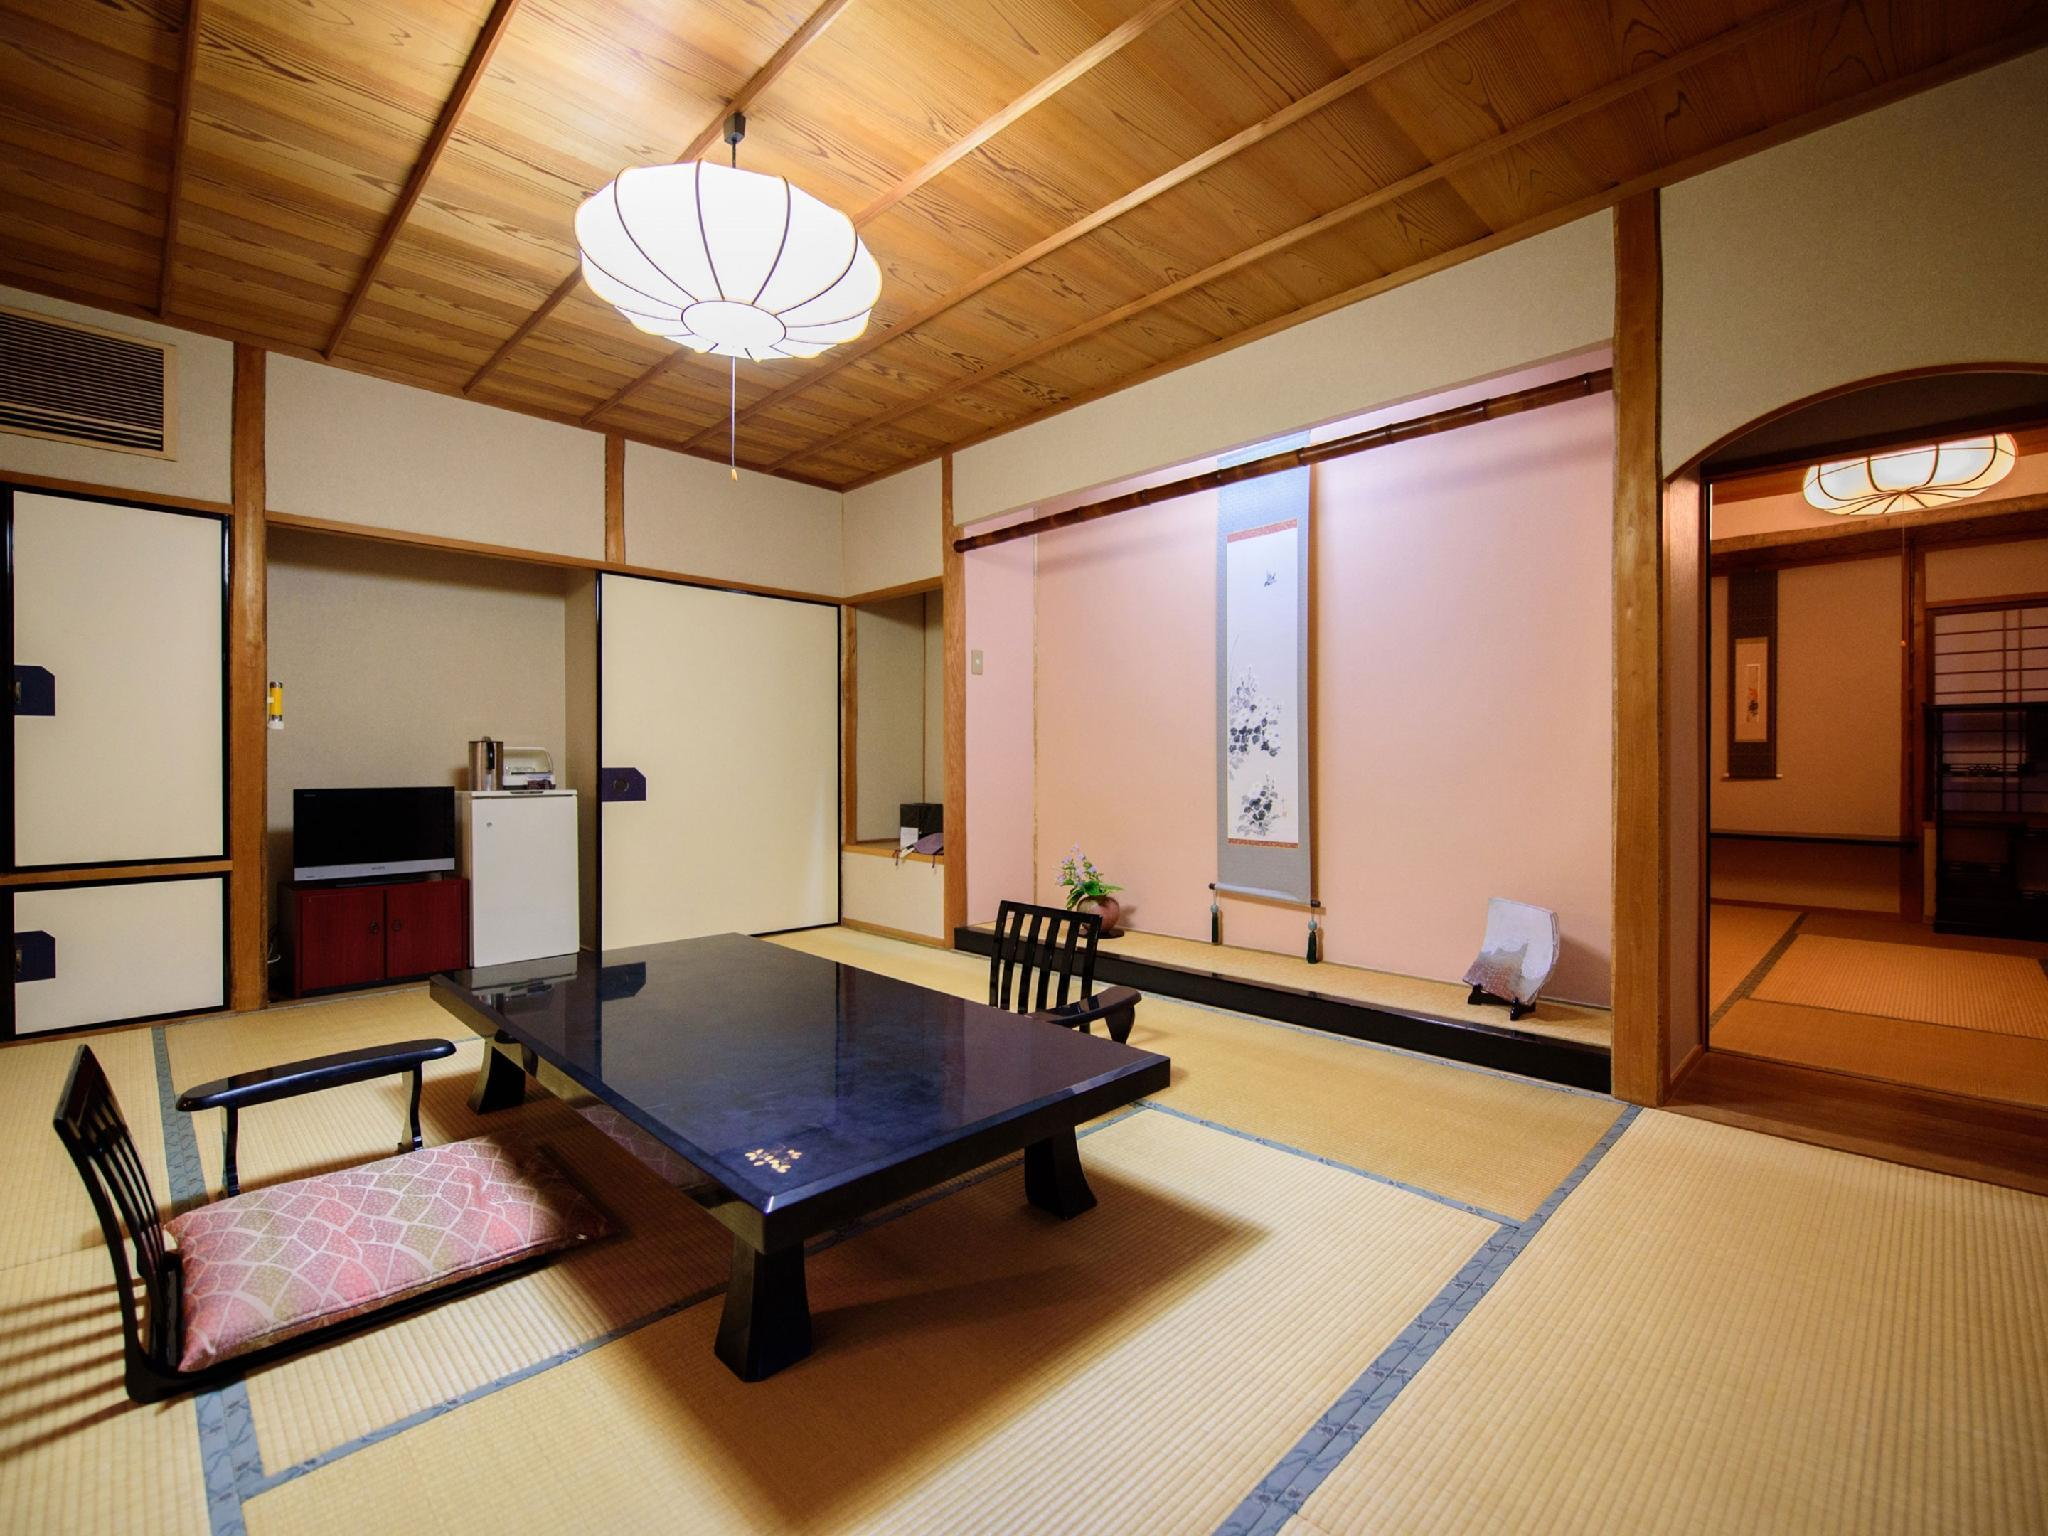 ■【あがの】檜風呂付離れ和室三間(10+6+4畳)[禁煙]|20畳 (Detached Japanese-style Room with Cypress Bath (Agano Type))